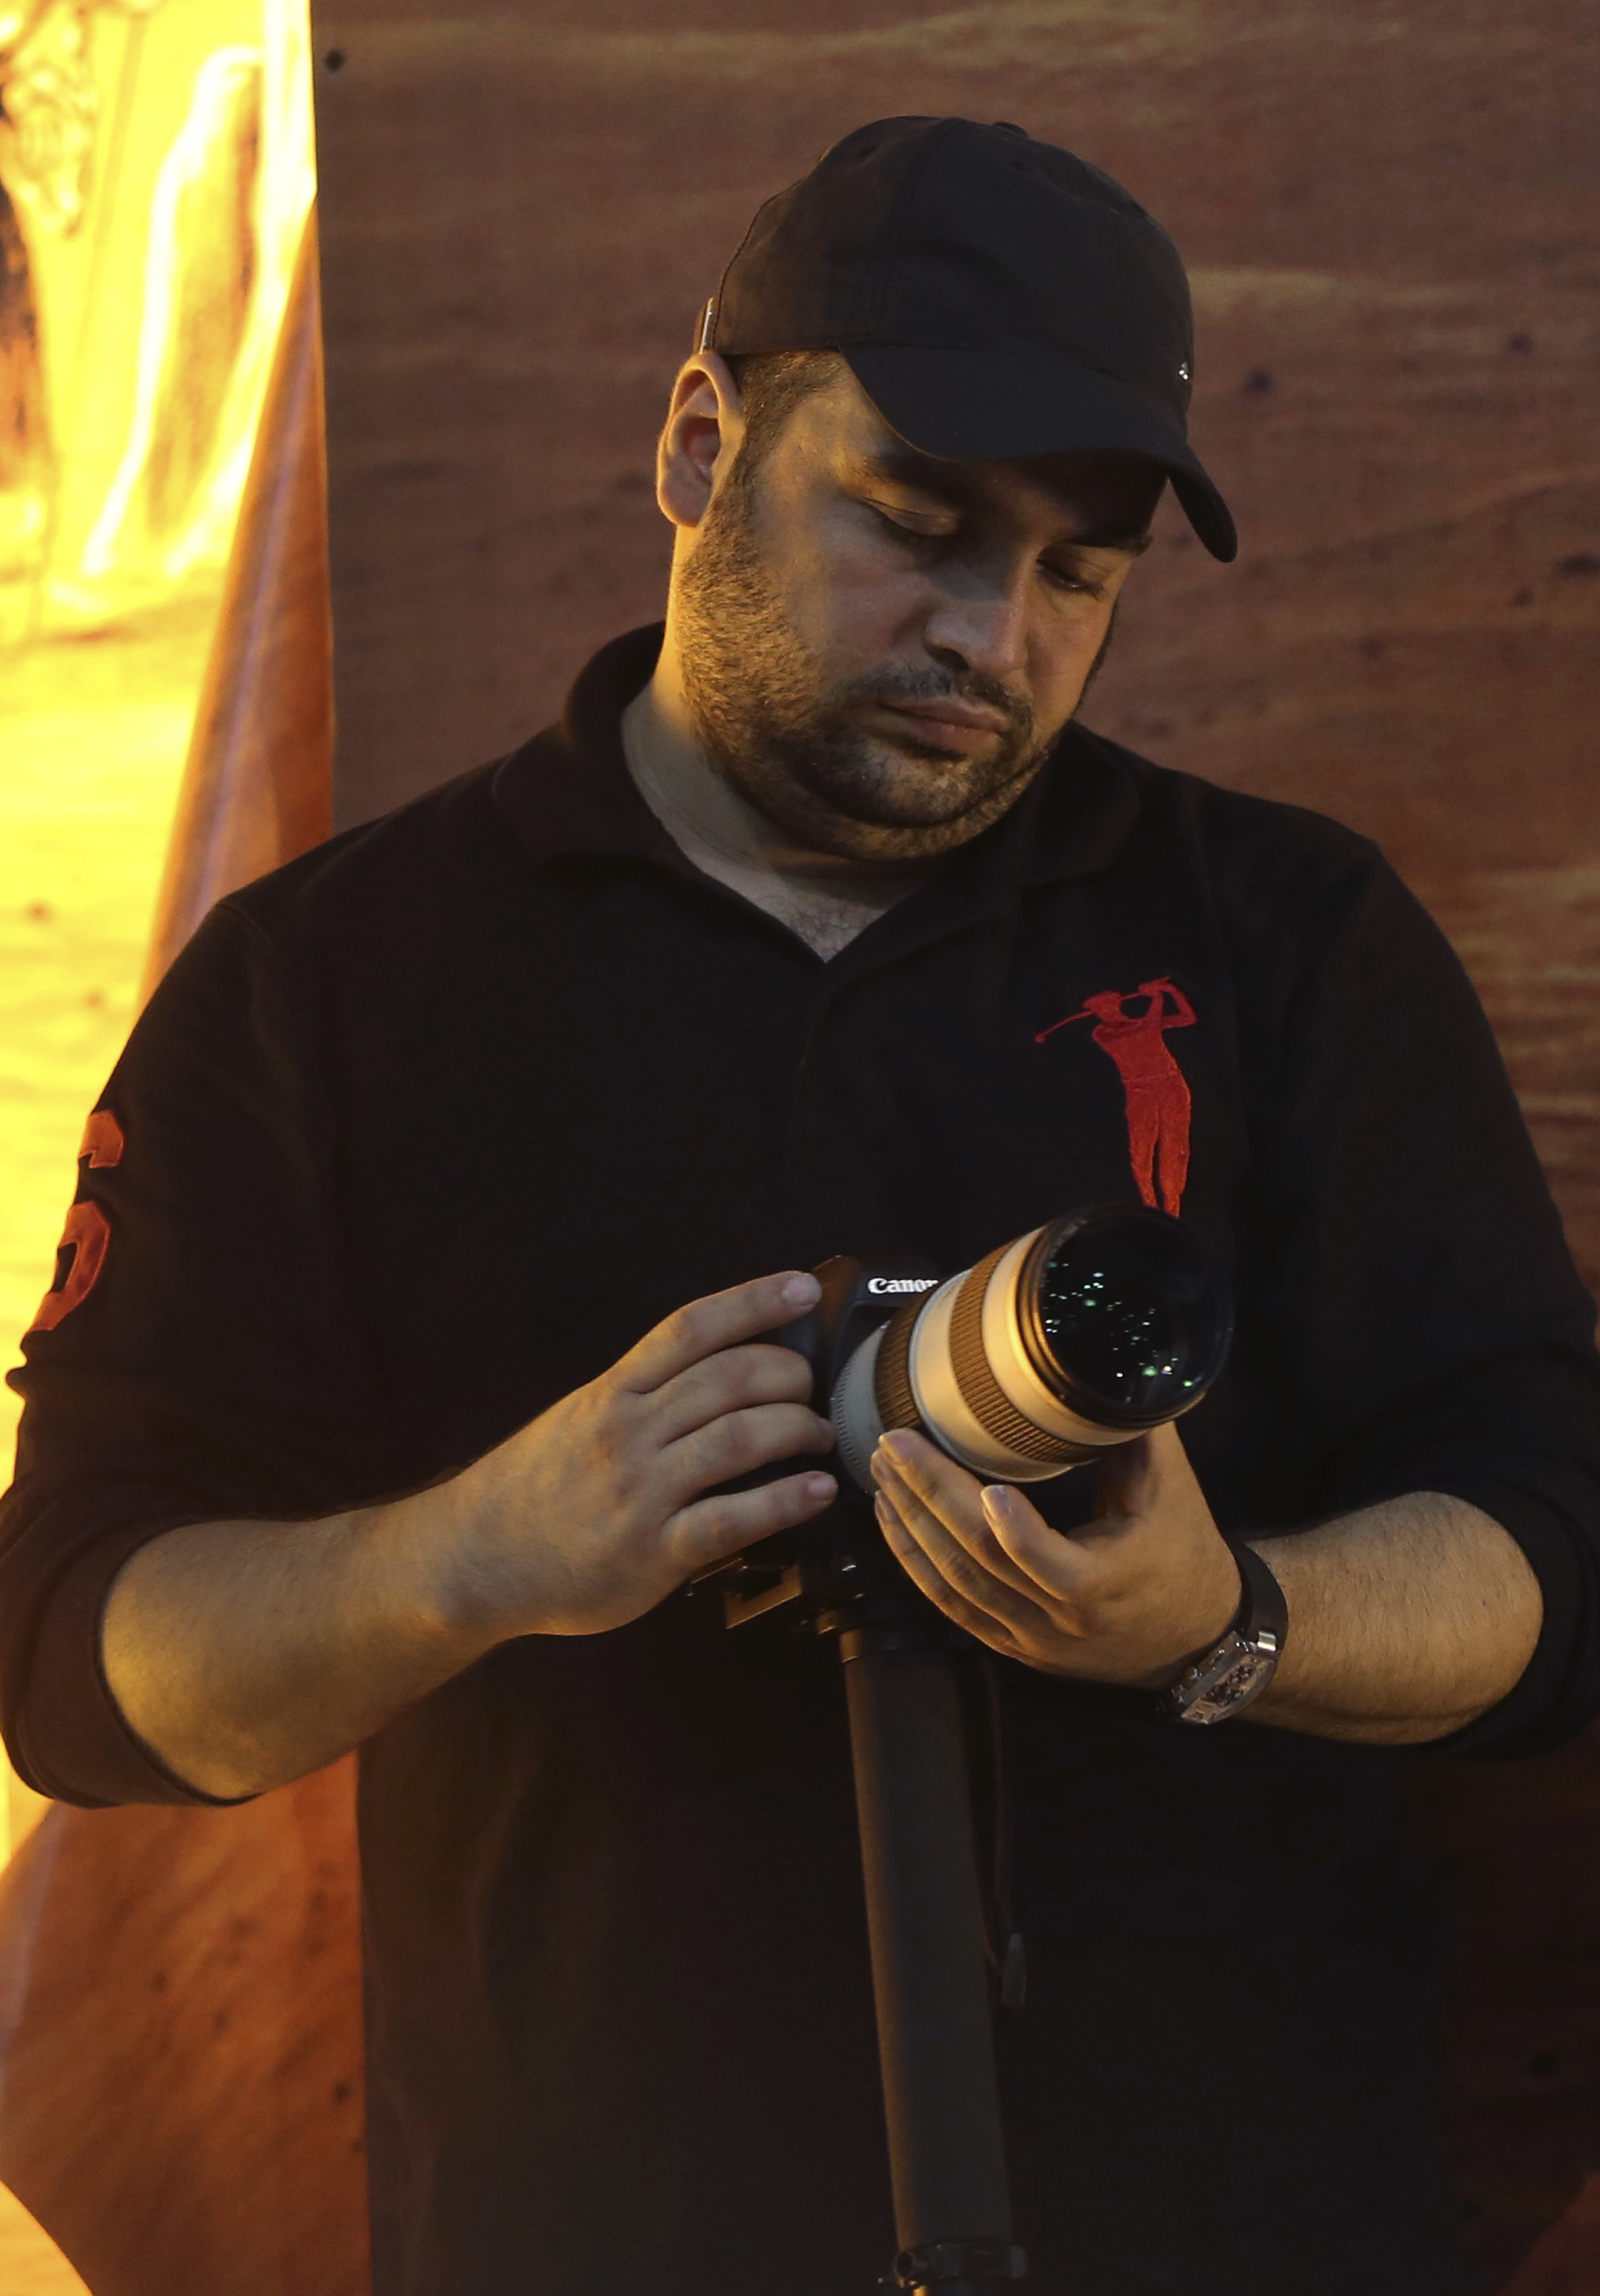 FILE - Jawad Nasrallah, the second-eldest son of Hezbollah leader Sheikh Hassan Nasrallah, adjusts his camera during a speech by his father, in suburban Beirut, Lebanon, Nov. 3, 2014. Jawad has been designated by the U.S. State Department as a global...